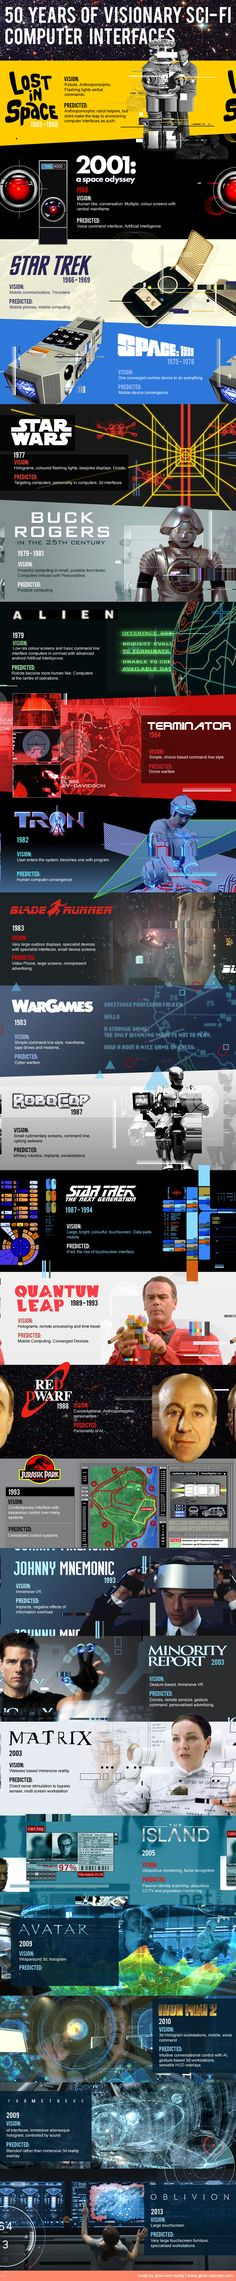 50 Years Of Sci-Fi Interfaces & What They Predicted #infographic